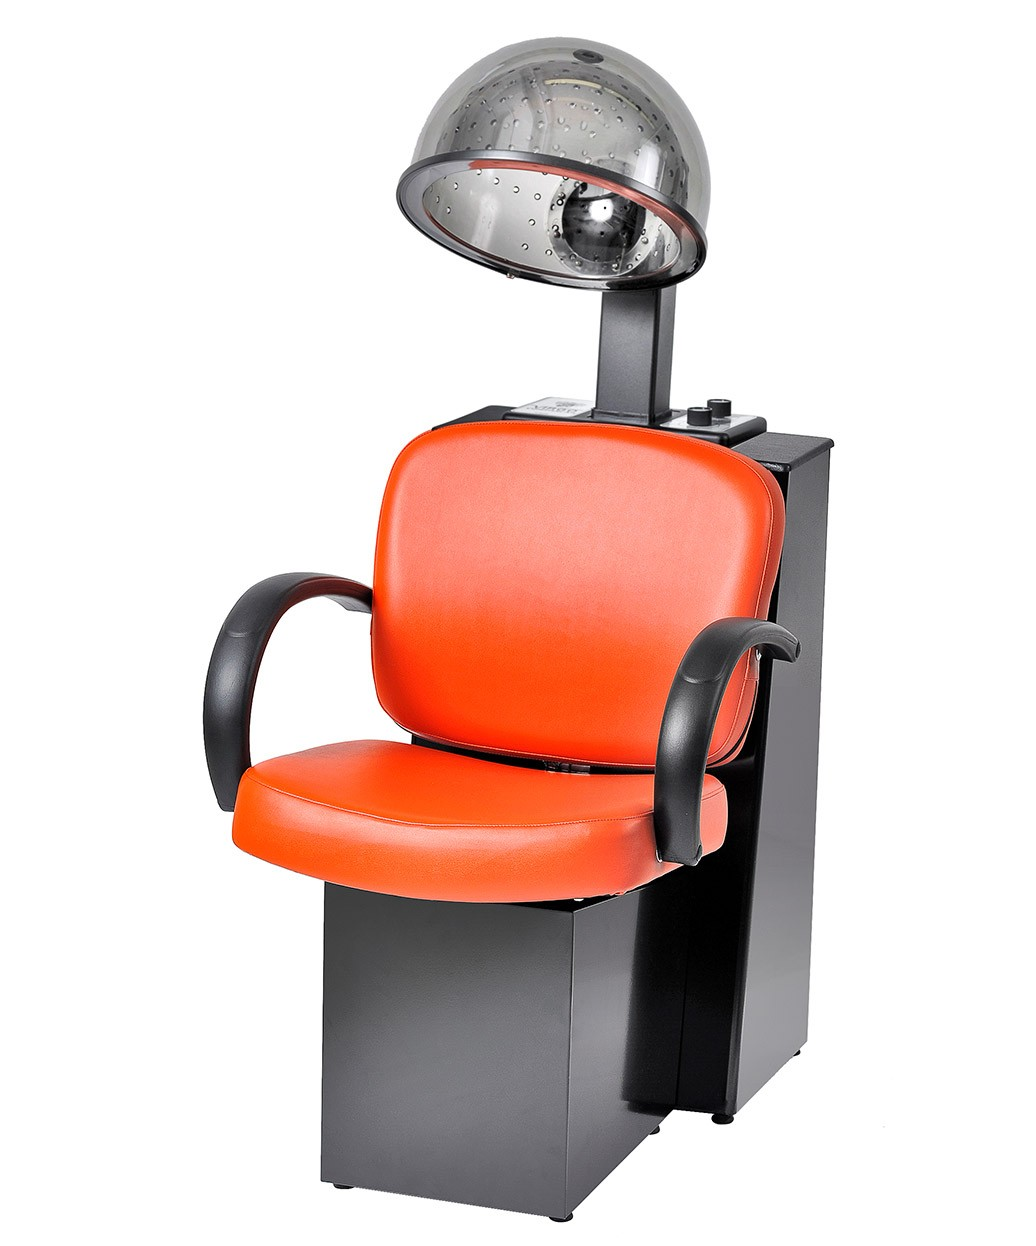 Salon Dryer Chair Pibbs 3669 Messina Dryer Chair